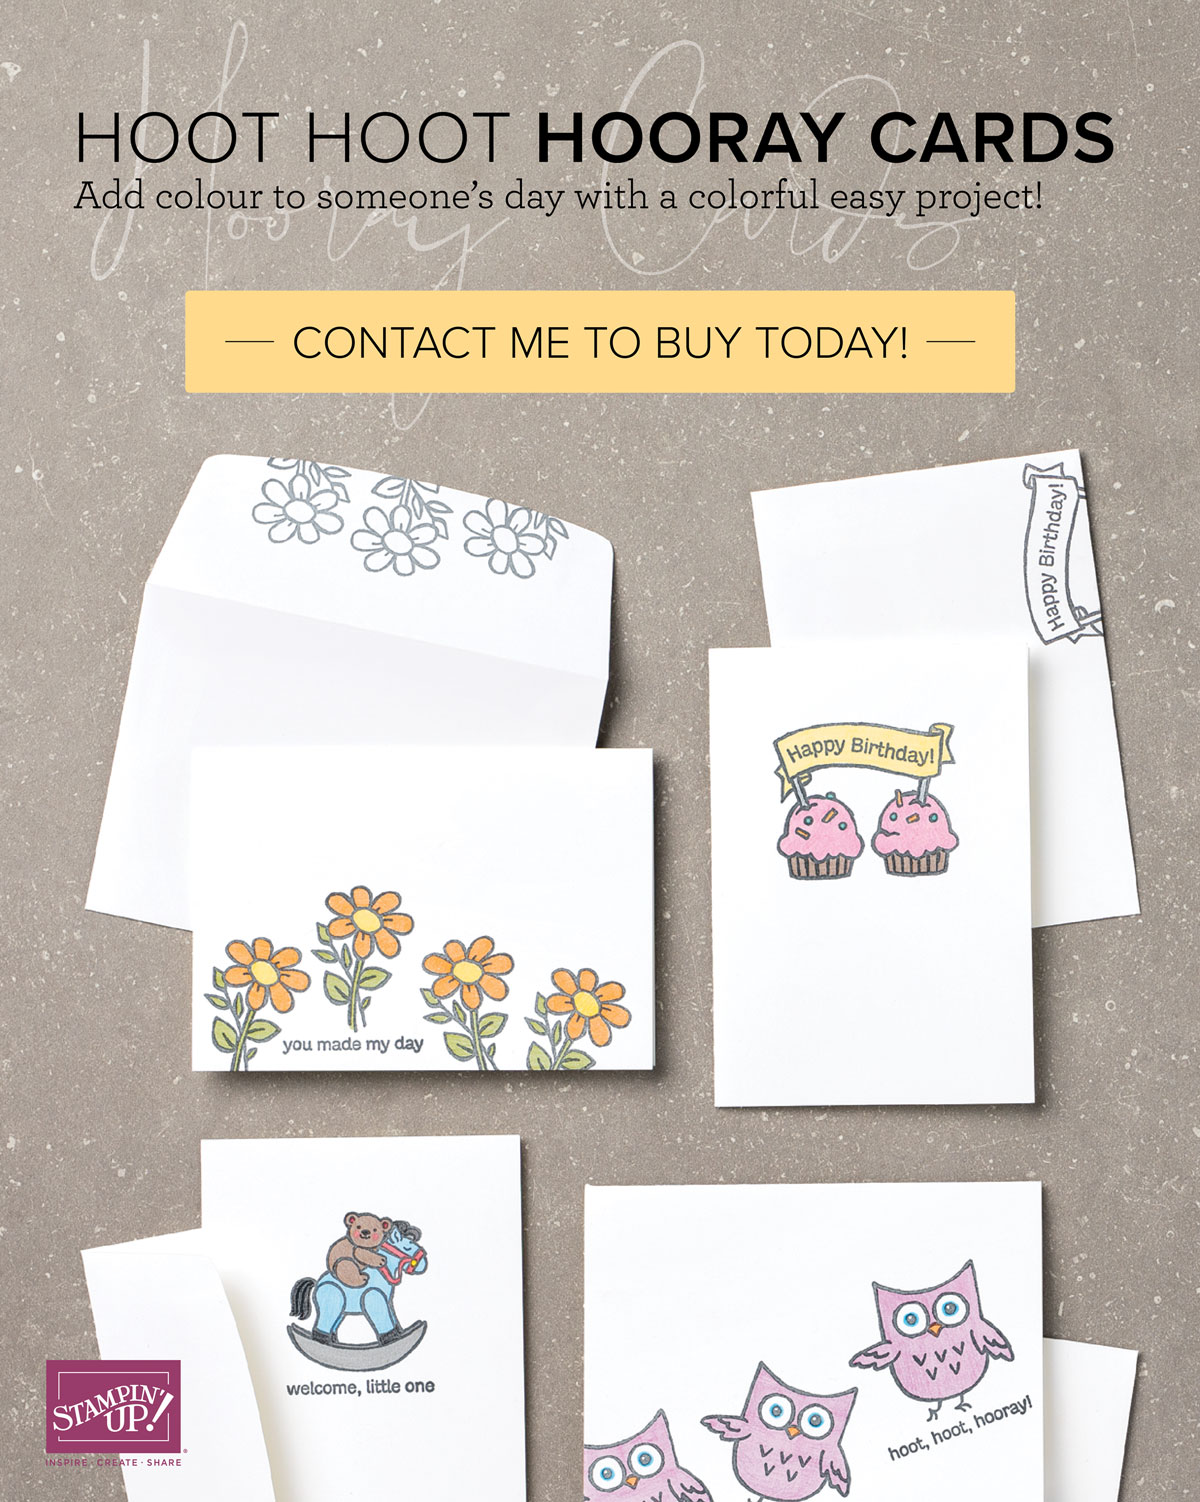 HOOT HOOT HOORAY CARD BUNDLE